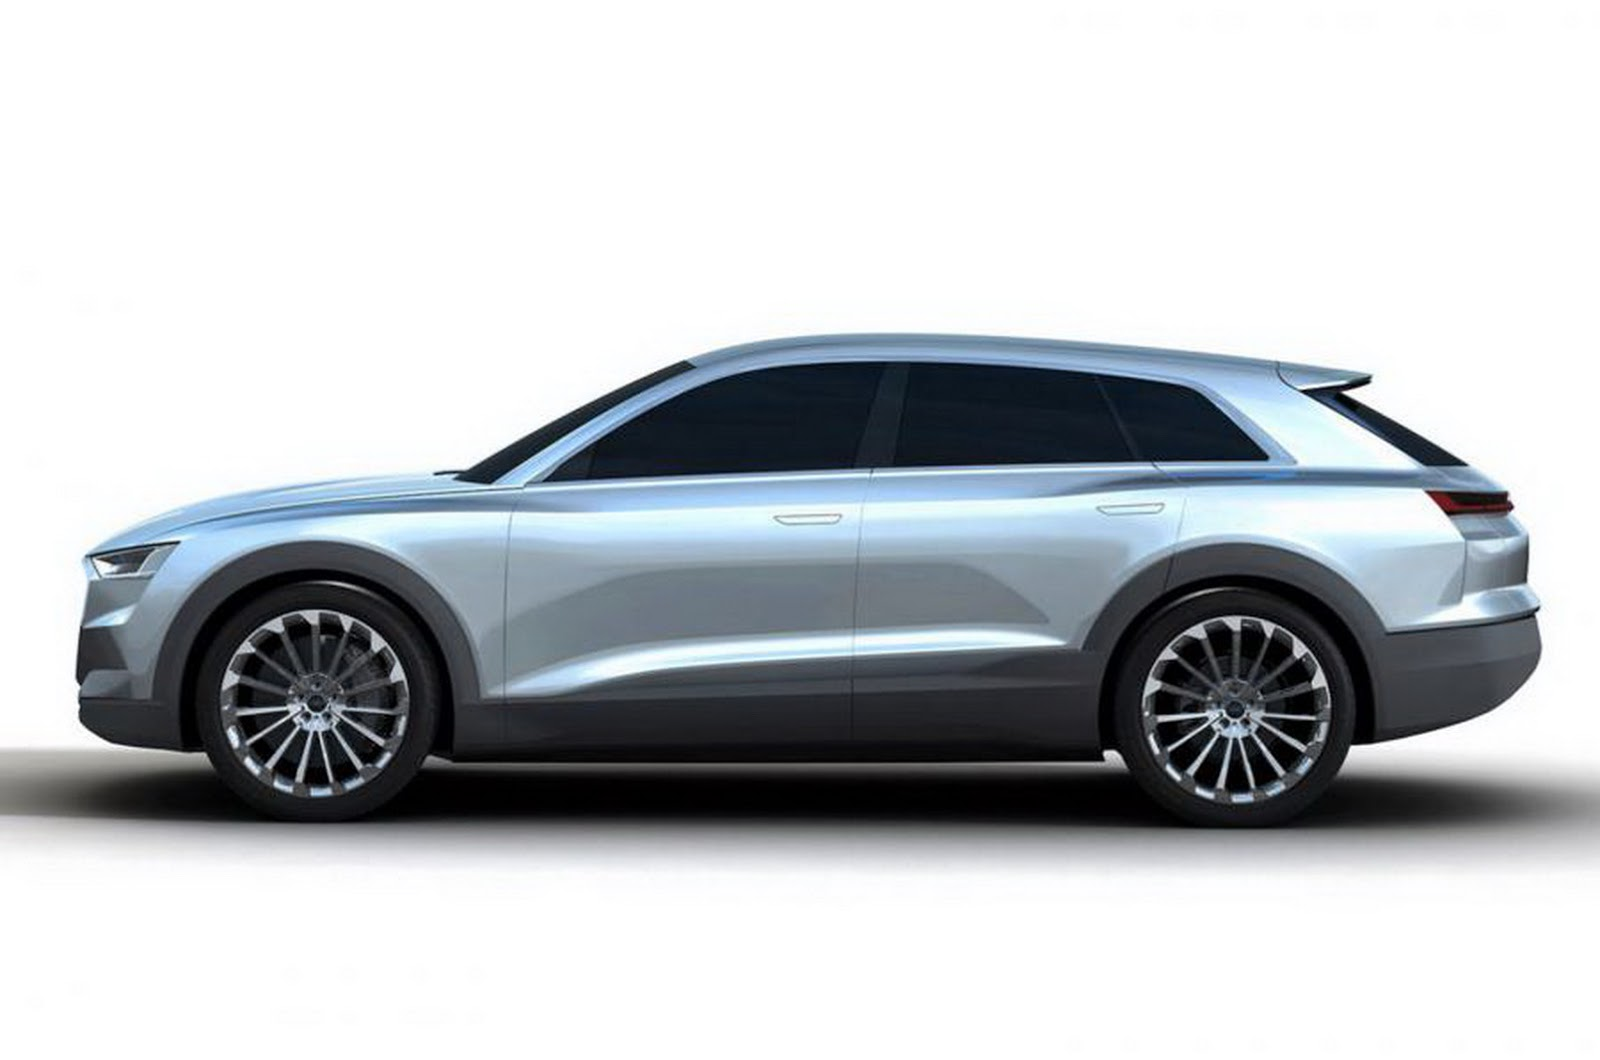 Audi S New C Bev Concept Likely Previews Its Q6 Tesla